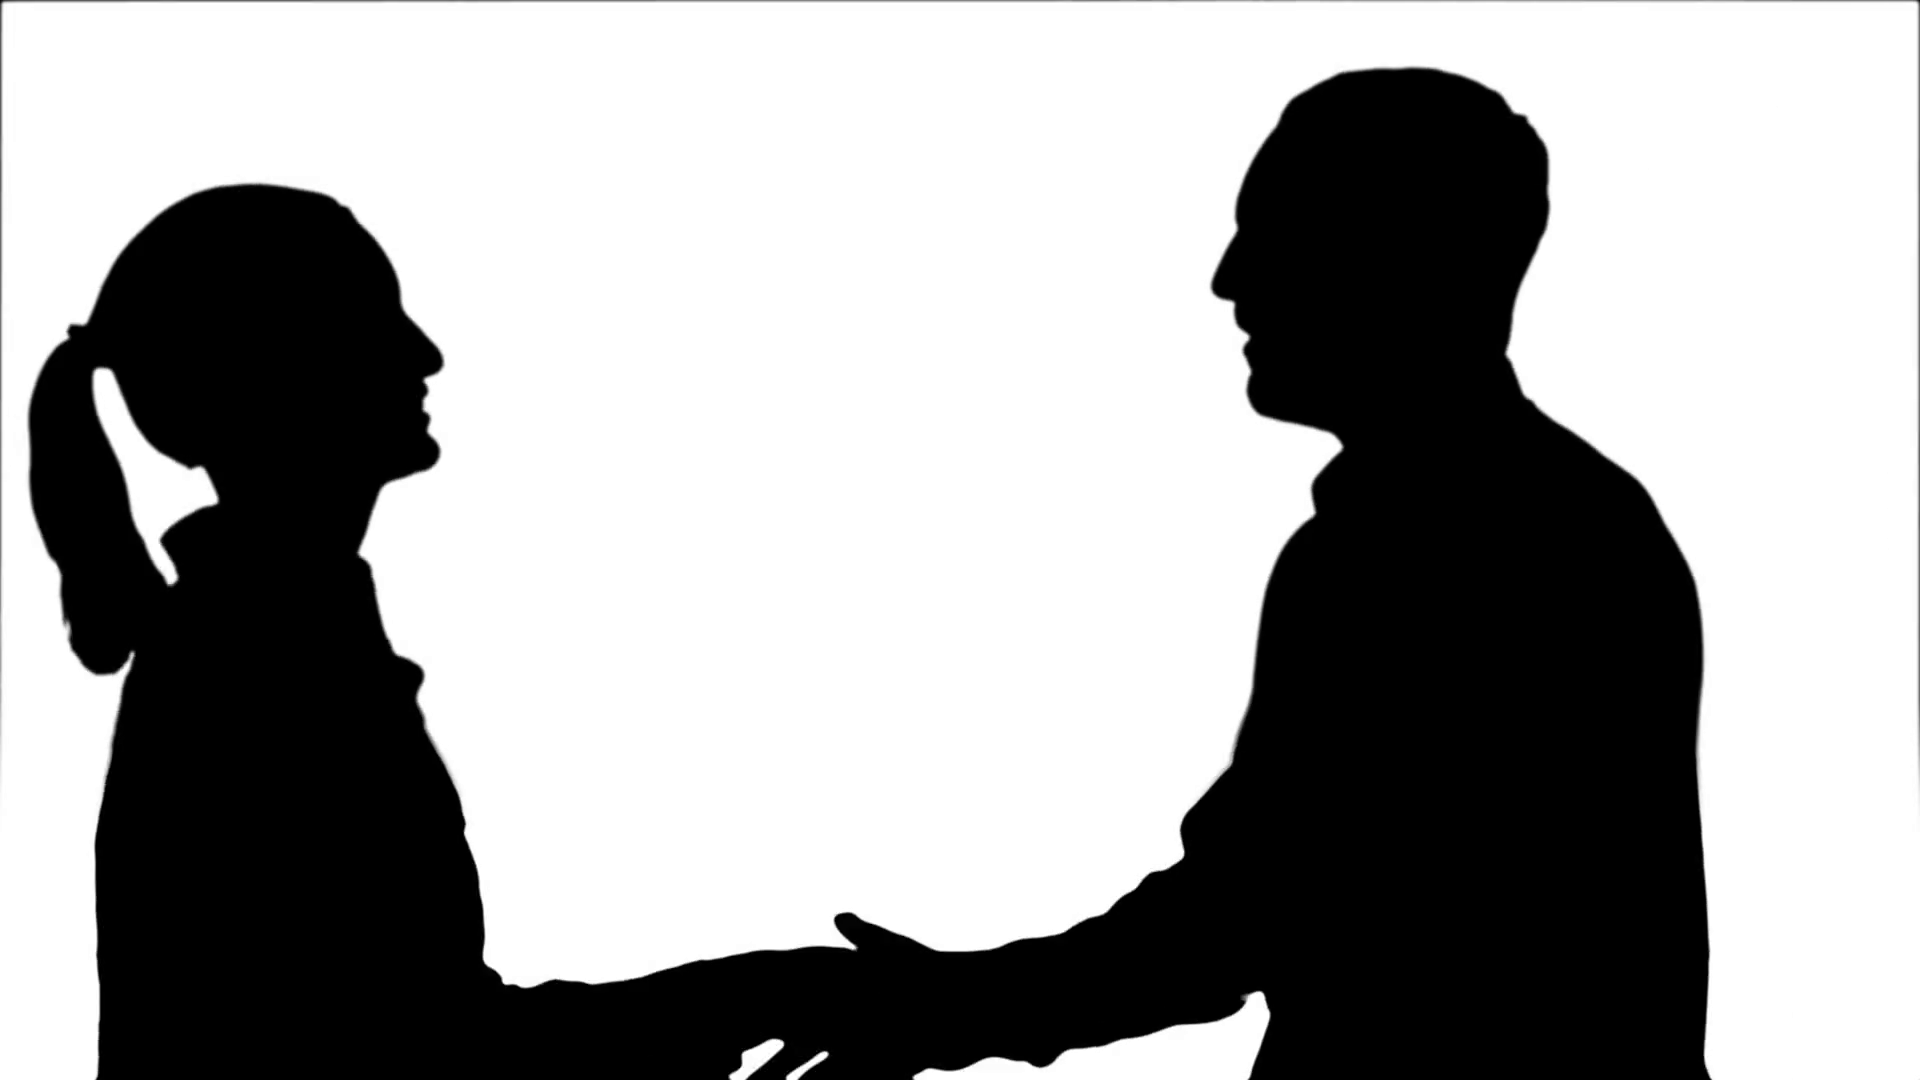 1920x1080 Silhouette People Meet And Shake Hands Stock Video Footage